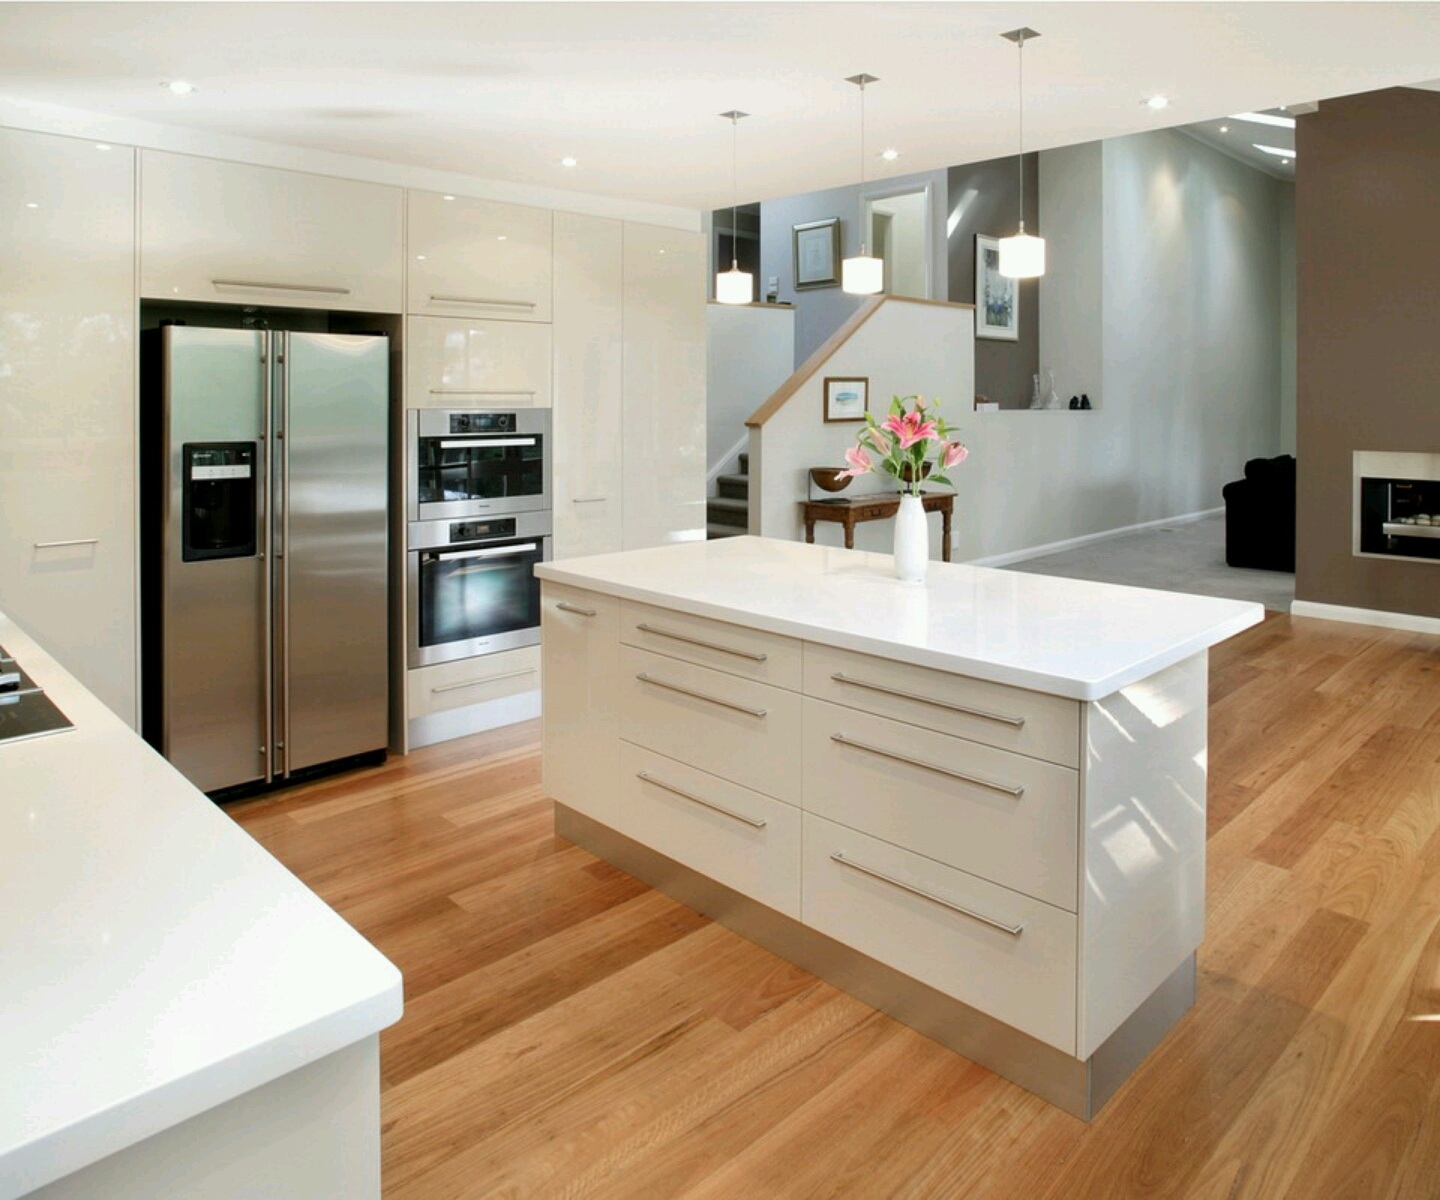 Http Galleryfurnitureblogkespot Blogspot Com 2012 12 Luxury Kitchen Modern Kitchen Cabinets Html